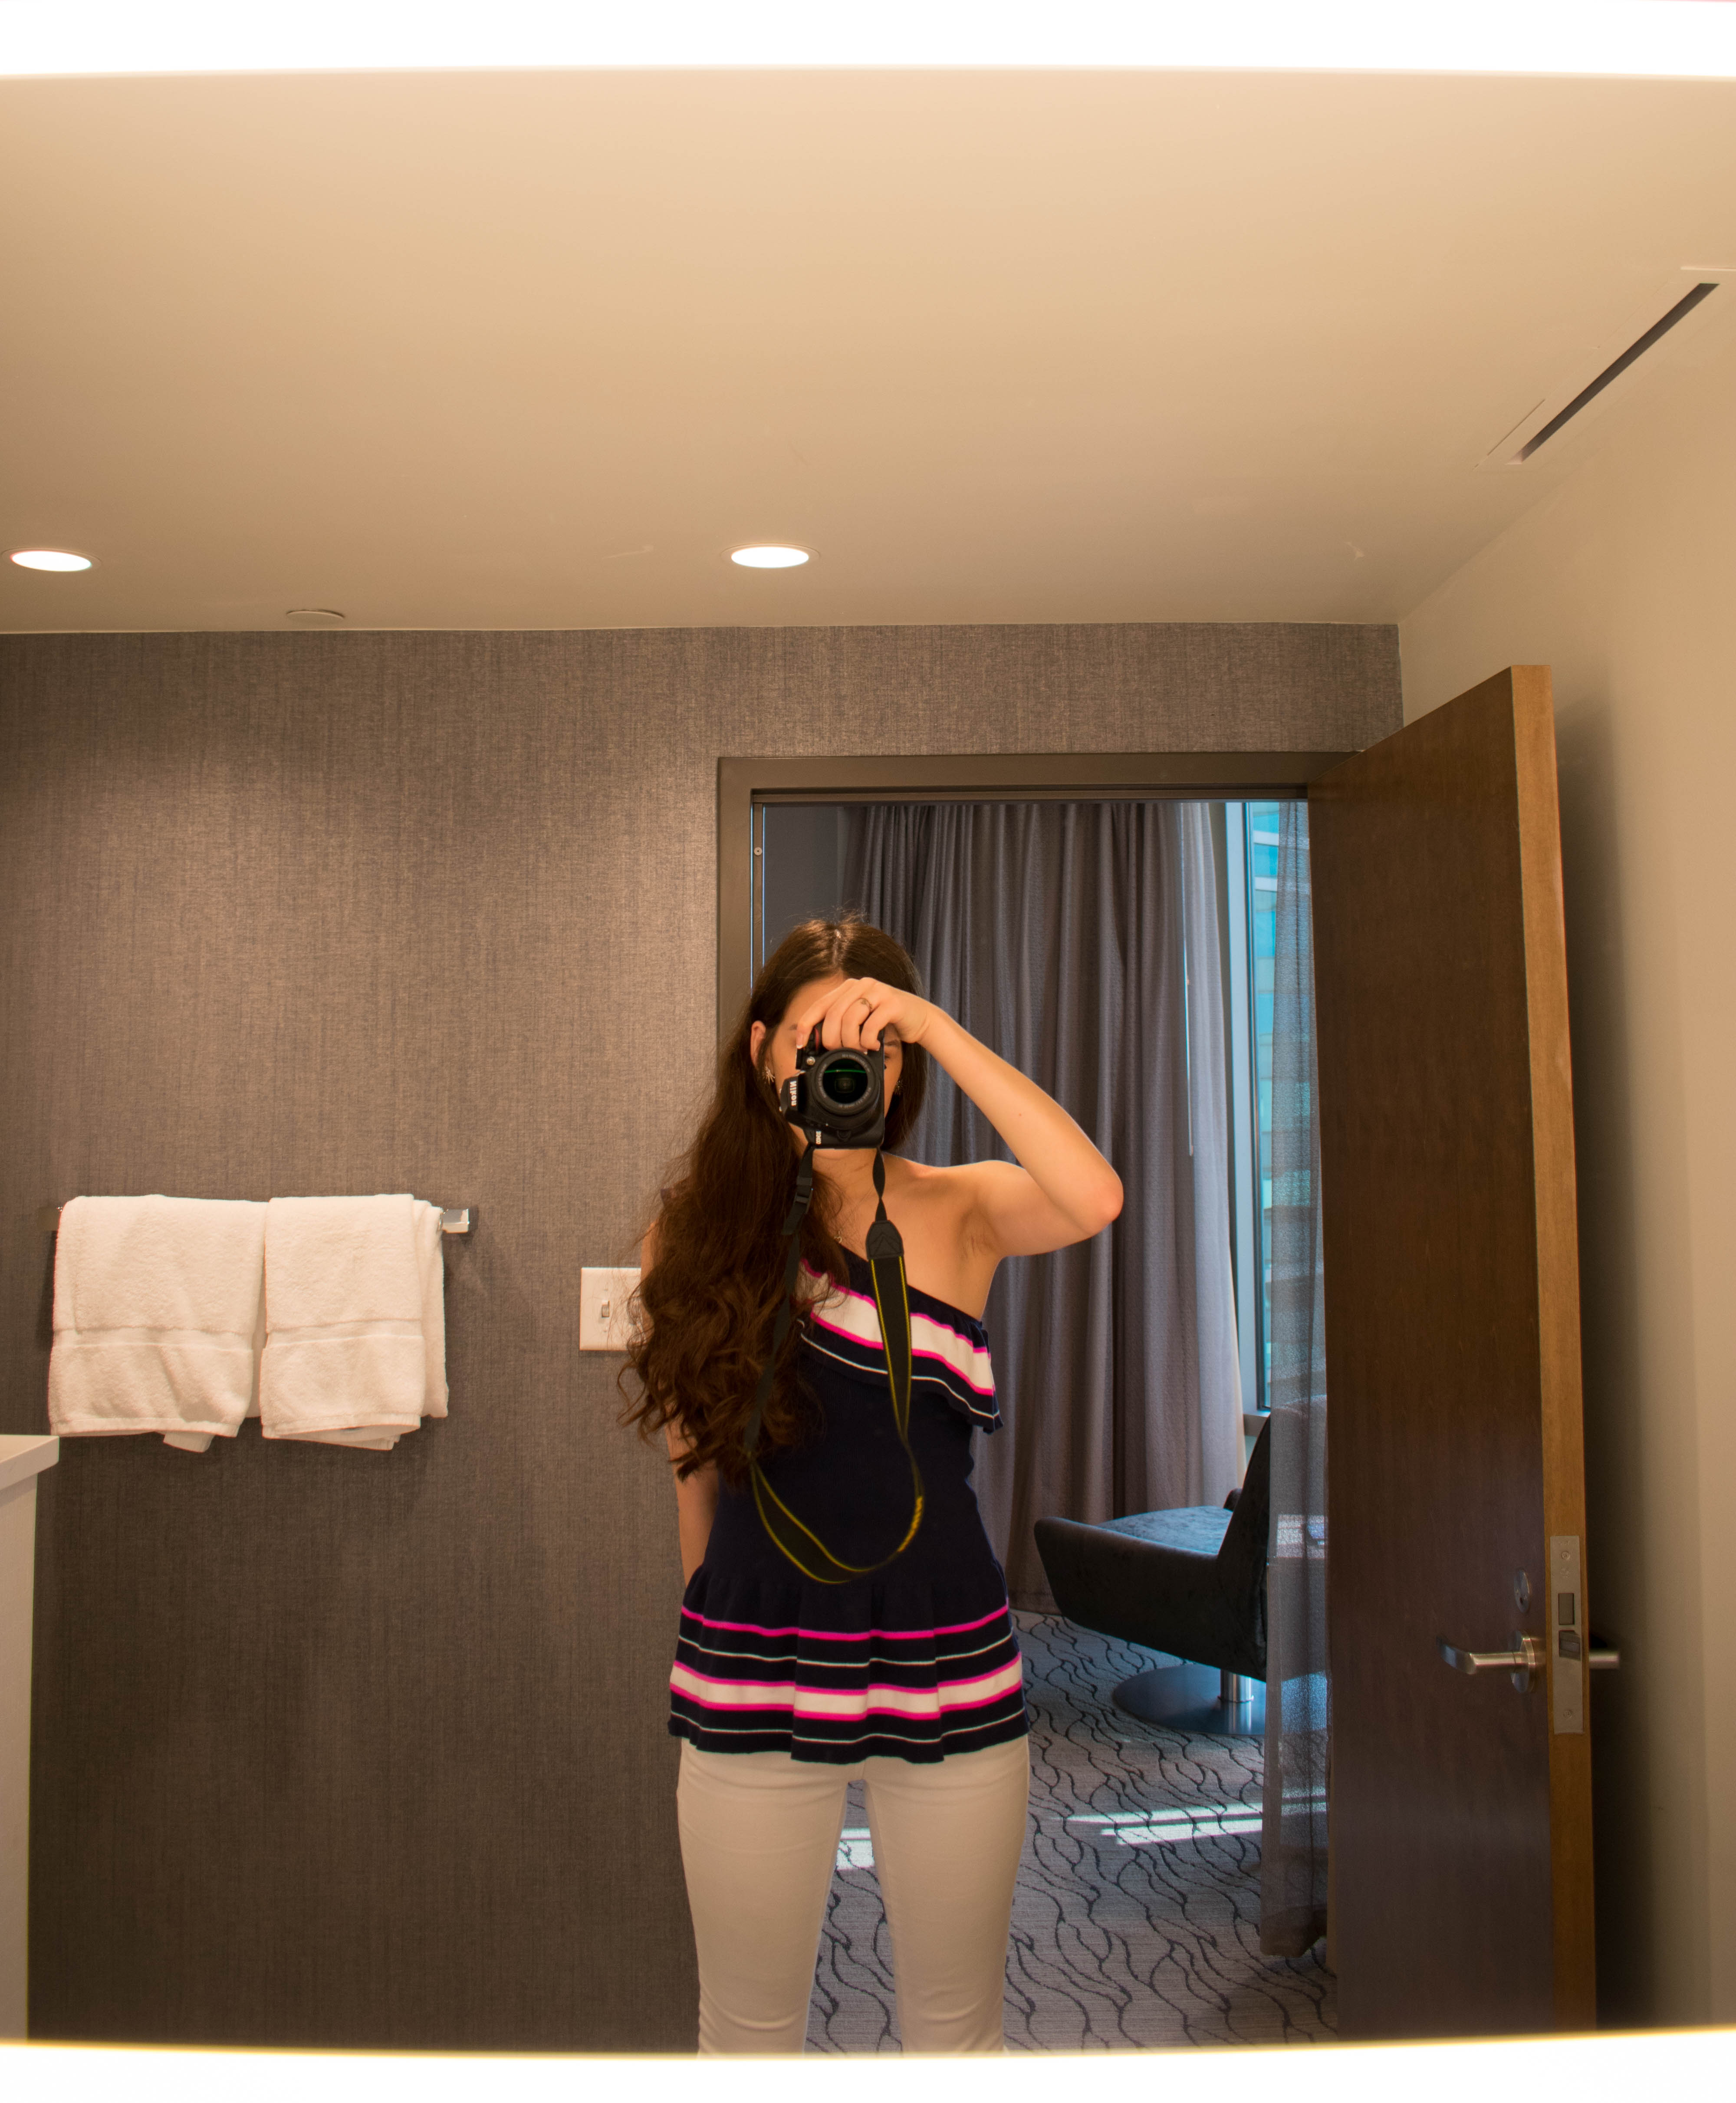 Eva Phan of Eva Darling midwest Minnesota travel blogger in a Lilly Pulitzer mandarina top white vineyard vines skinny jeans holding nikon d3400 DSLR camera in mystic lake casino luxury hotel review prior lake mn